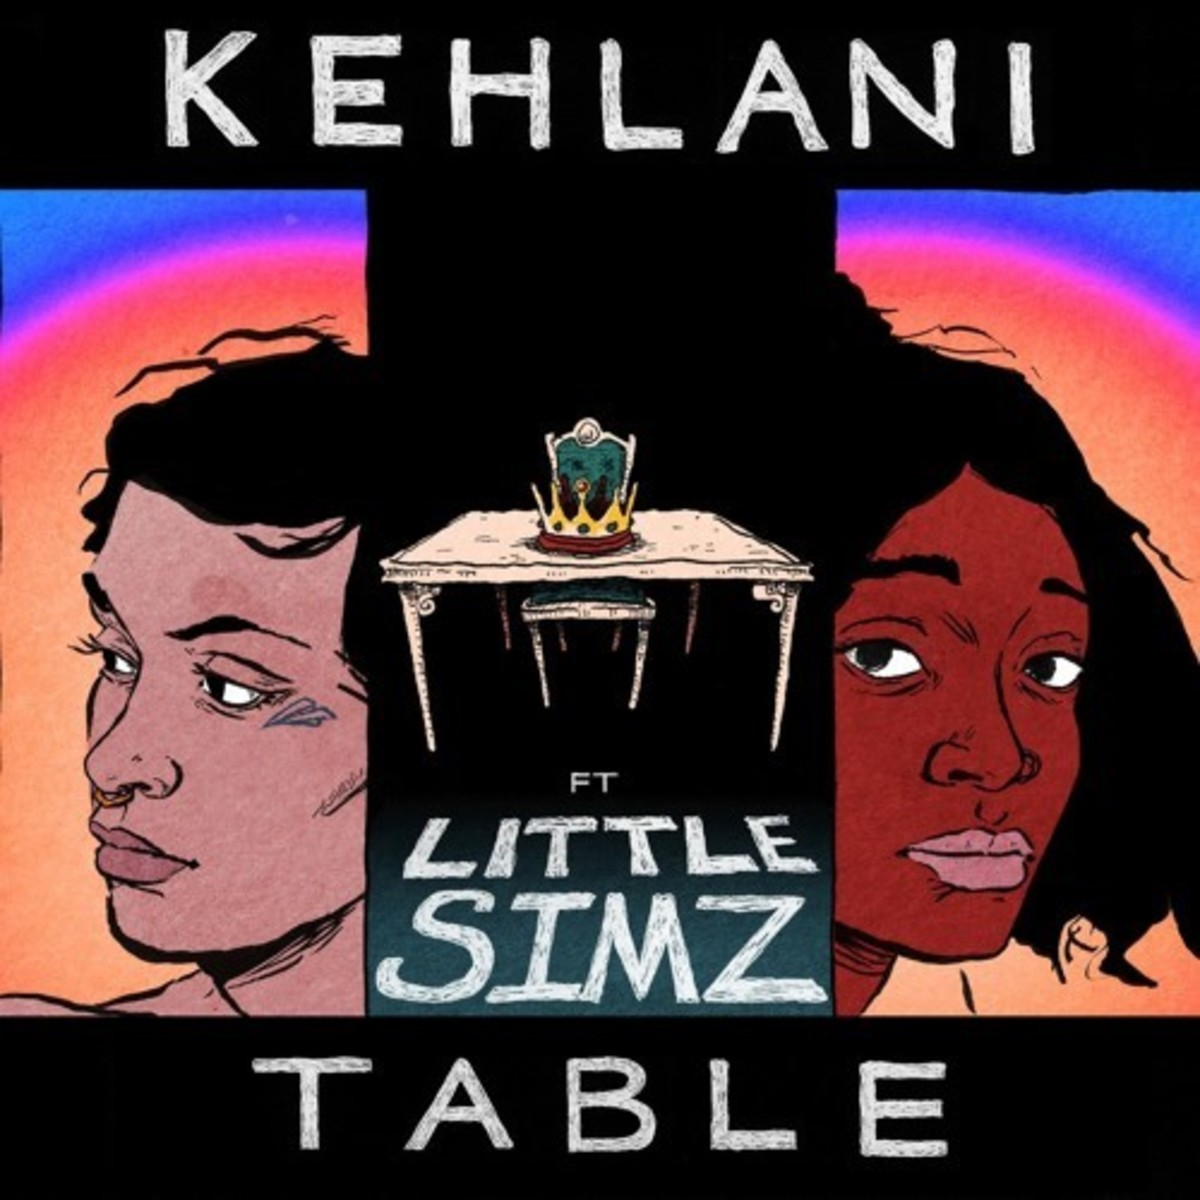 kehlani-table.jpg